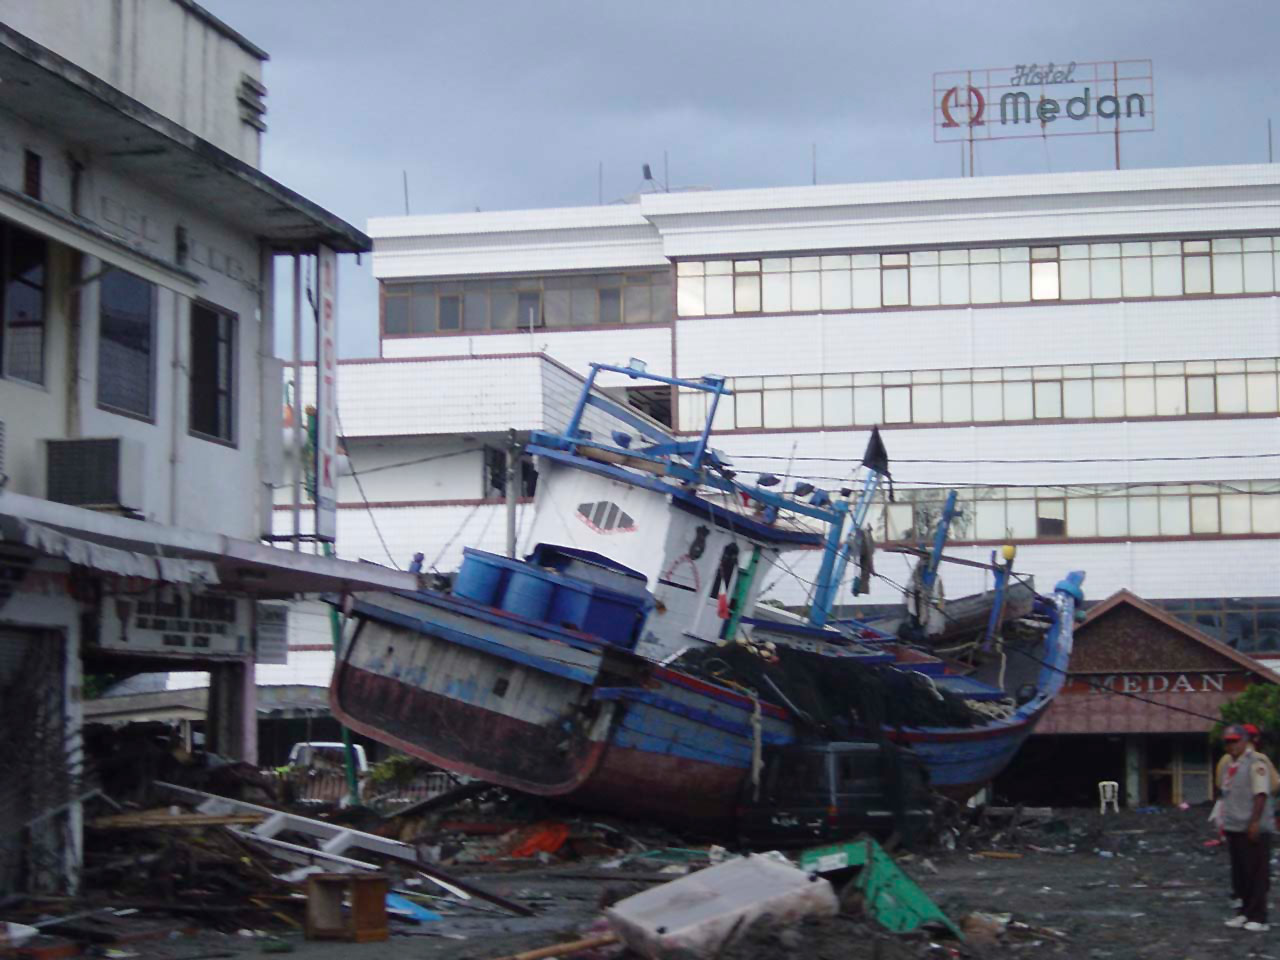 Boats washed ashore near local businesses in down town Aceh, Sumatra following a massive Tsunami